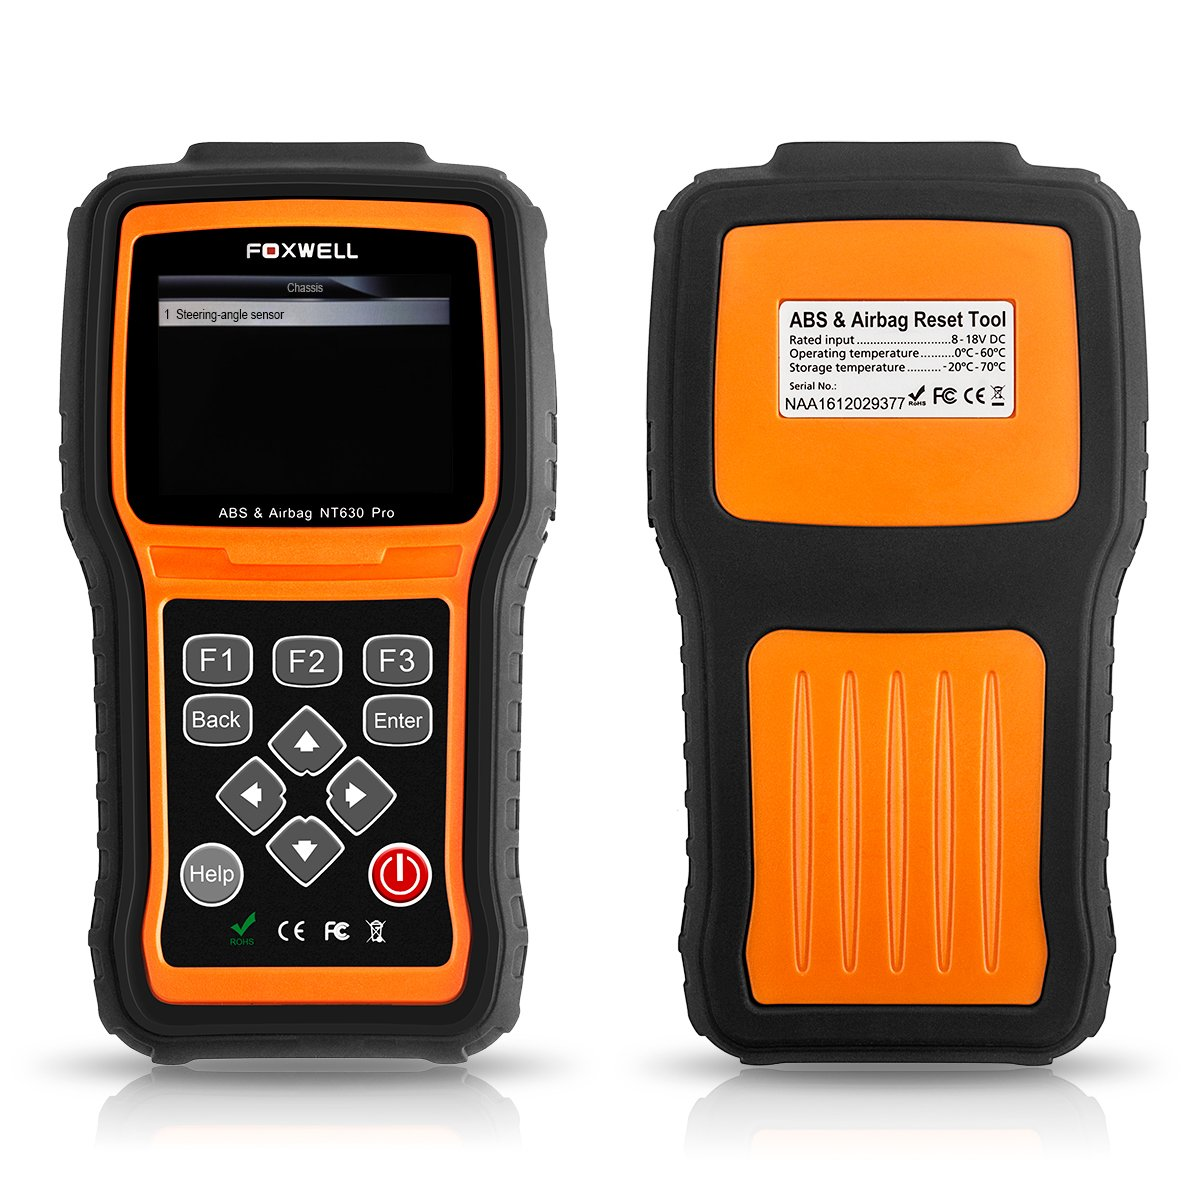 FOXWELL NT630 Scan Tool Engine / ABS / Airbag / SAS Crash Data Reset Tool  Code Reader Car Diagnostic Scanner by FOXWELL (Image #2)